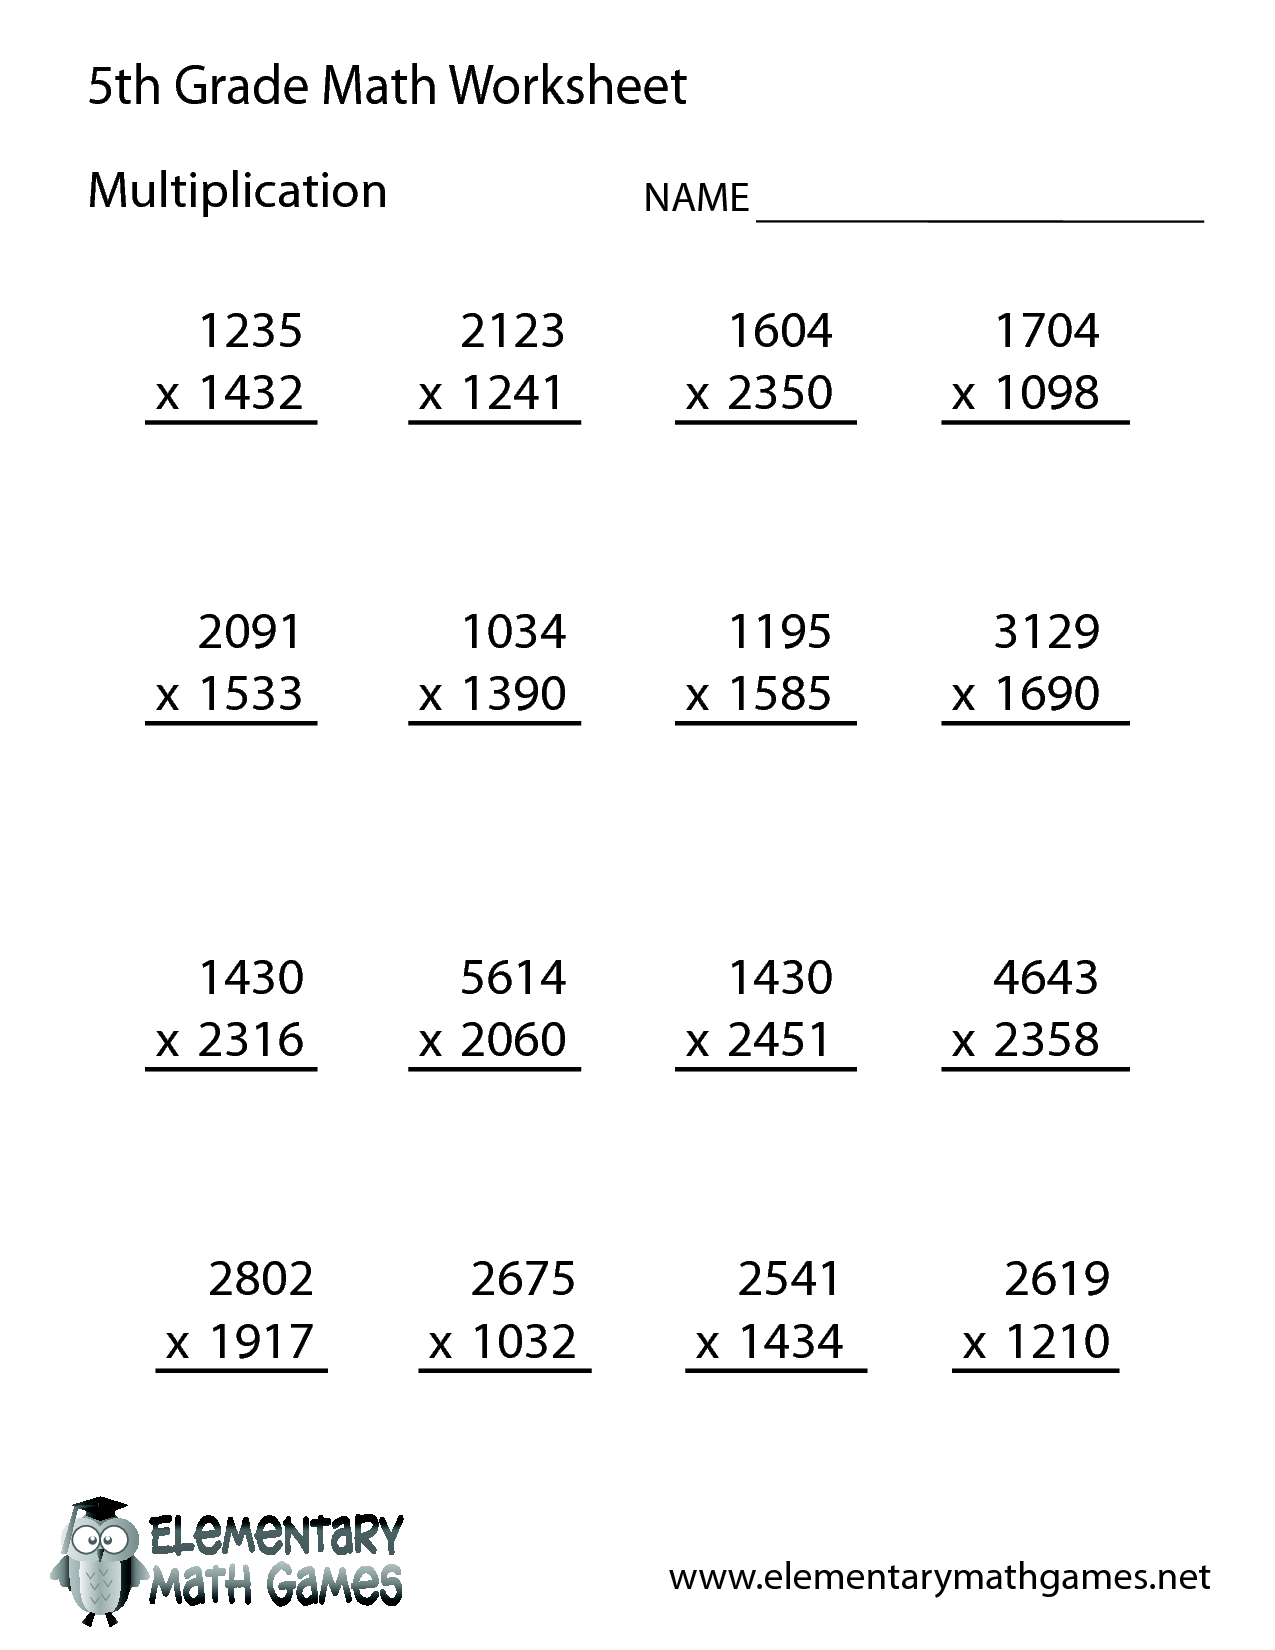 Free Math Worksheets for 5th Grade – 5th Grade Math Worksheets with Answer Key